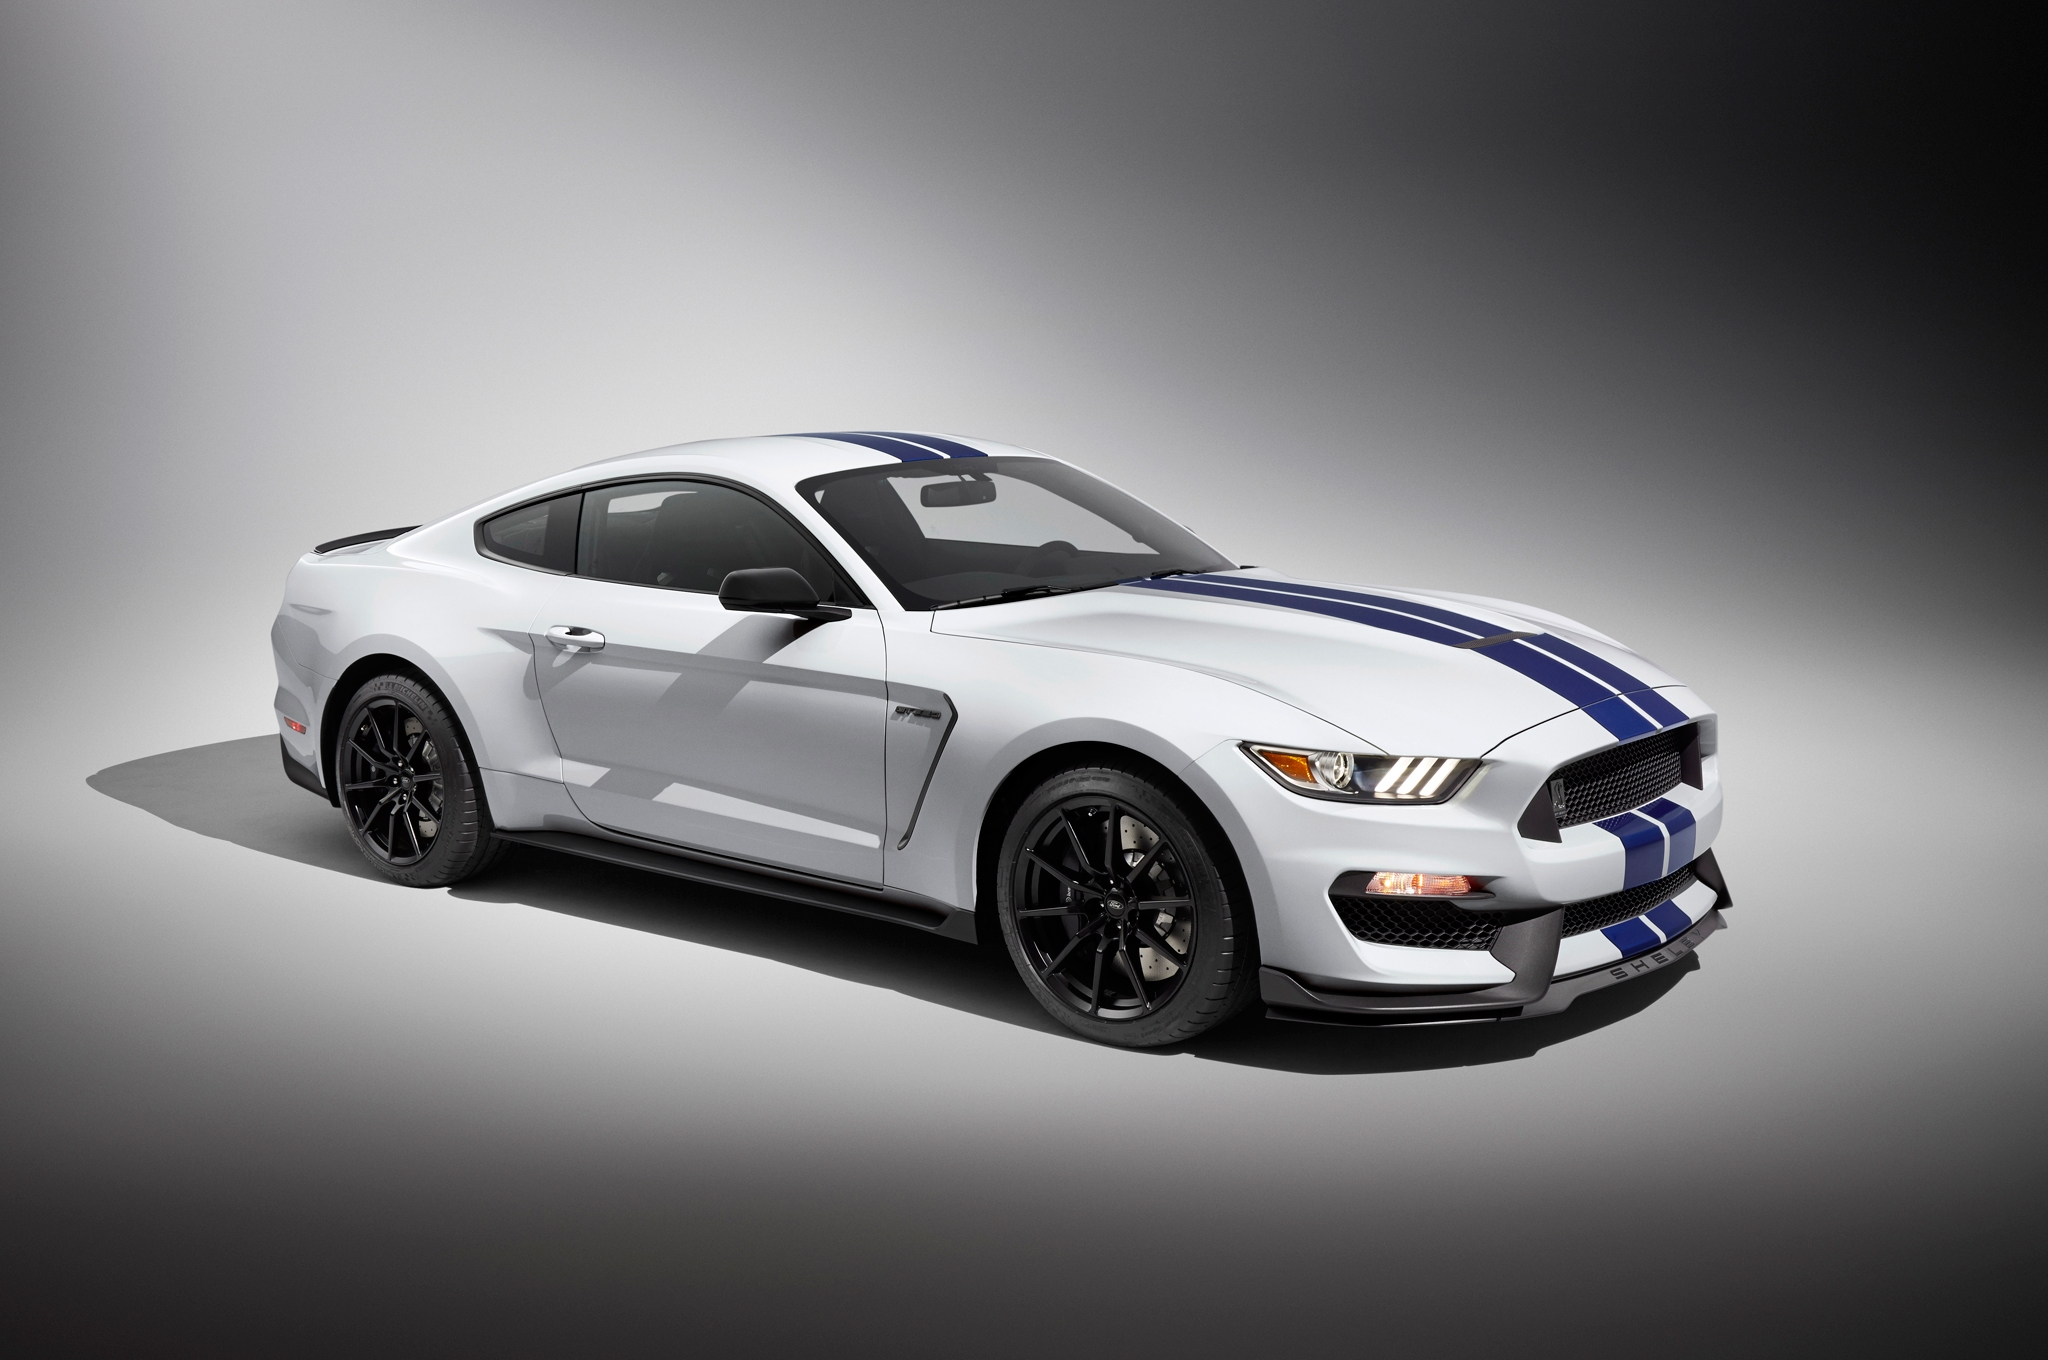 2016 Ford Shelby Gt350 #8